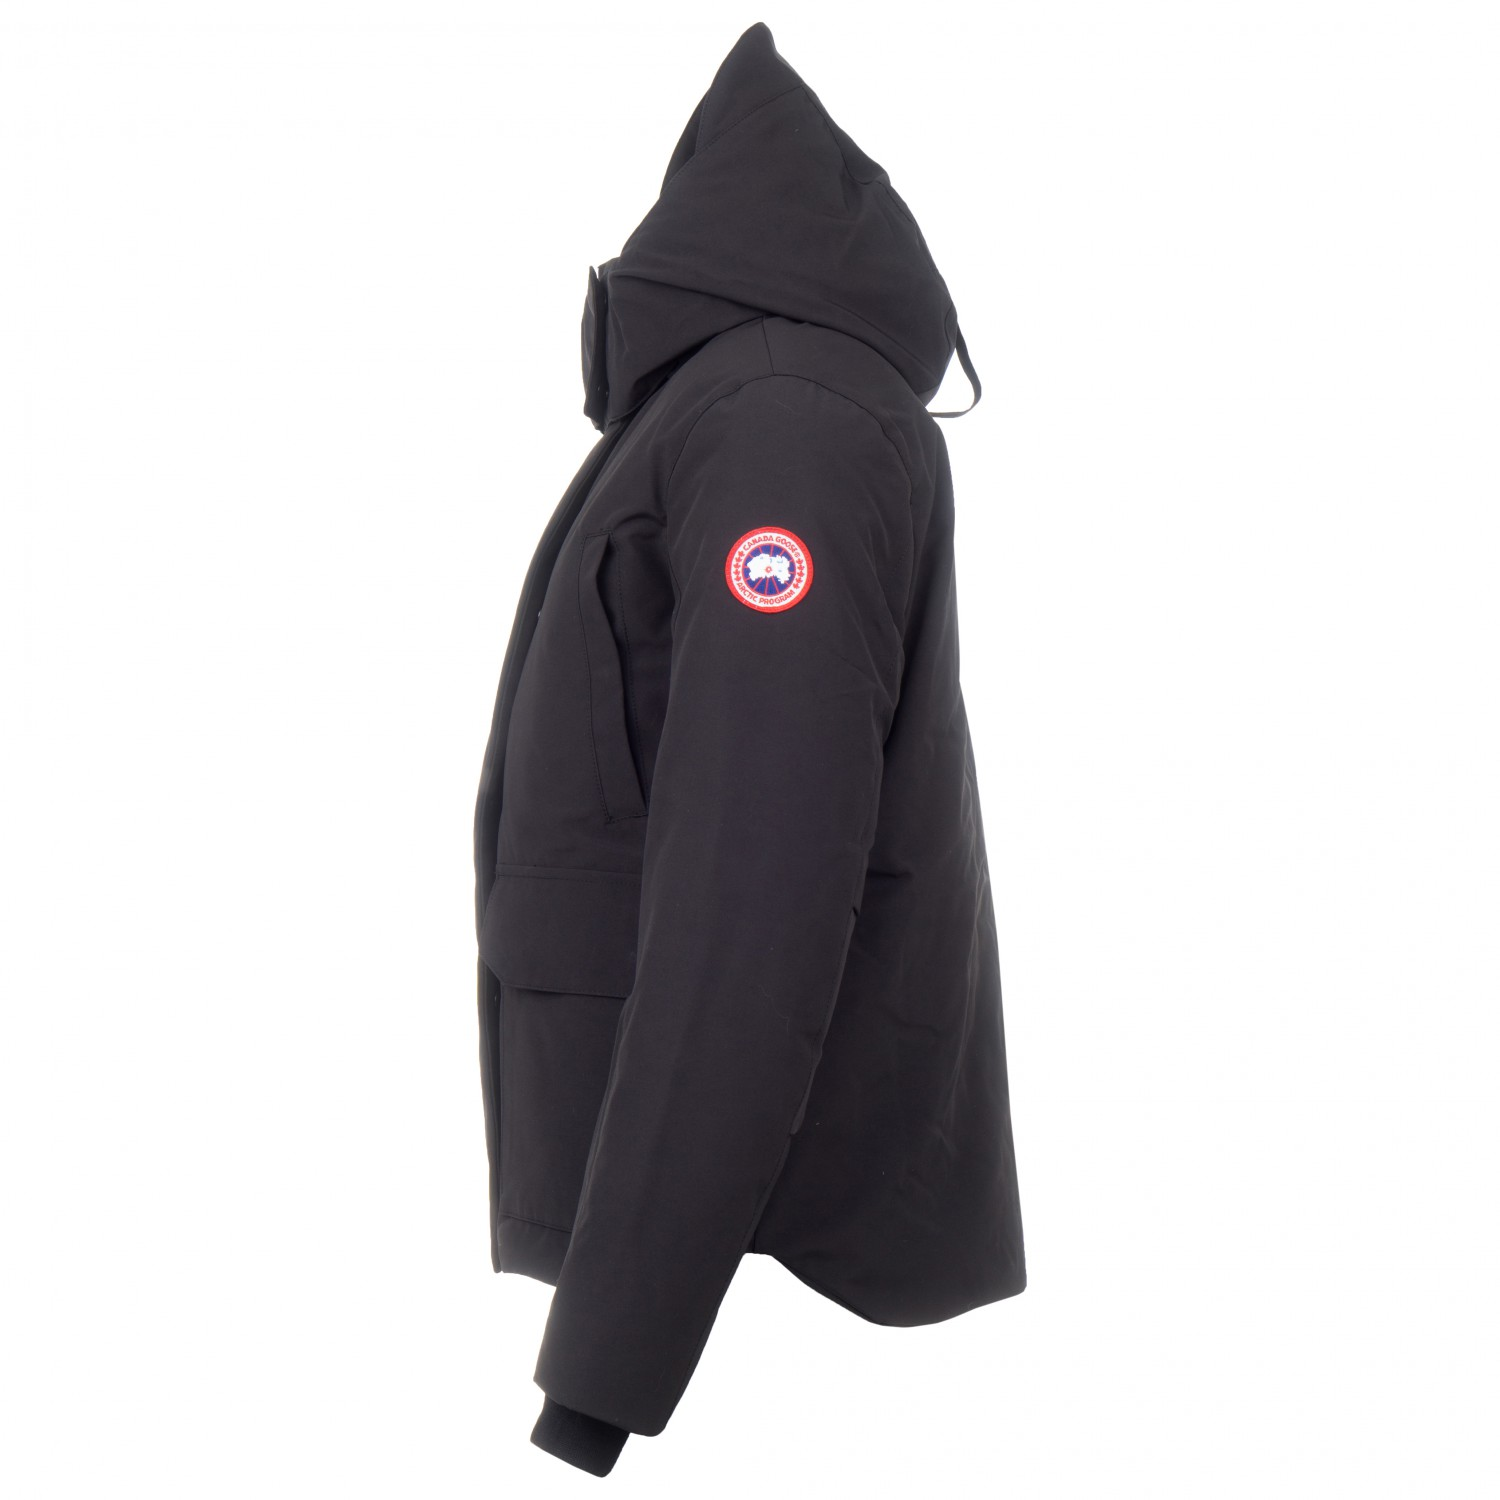 bc629c4d3db9 Canada Goose Blakely Water Resistant 625 Fill Power Down Parka